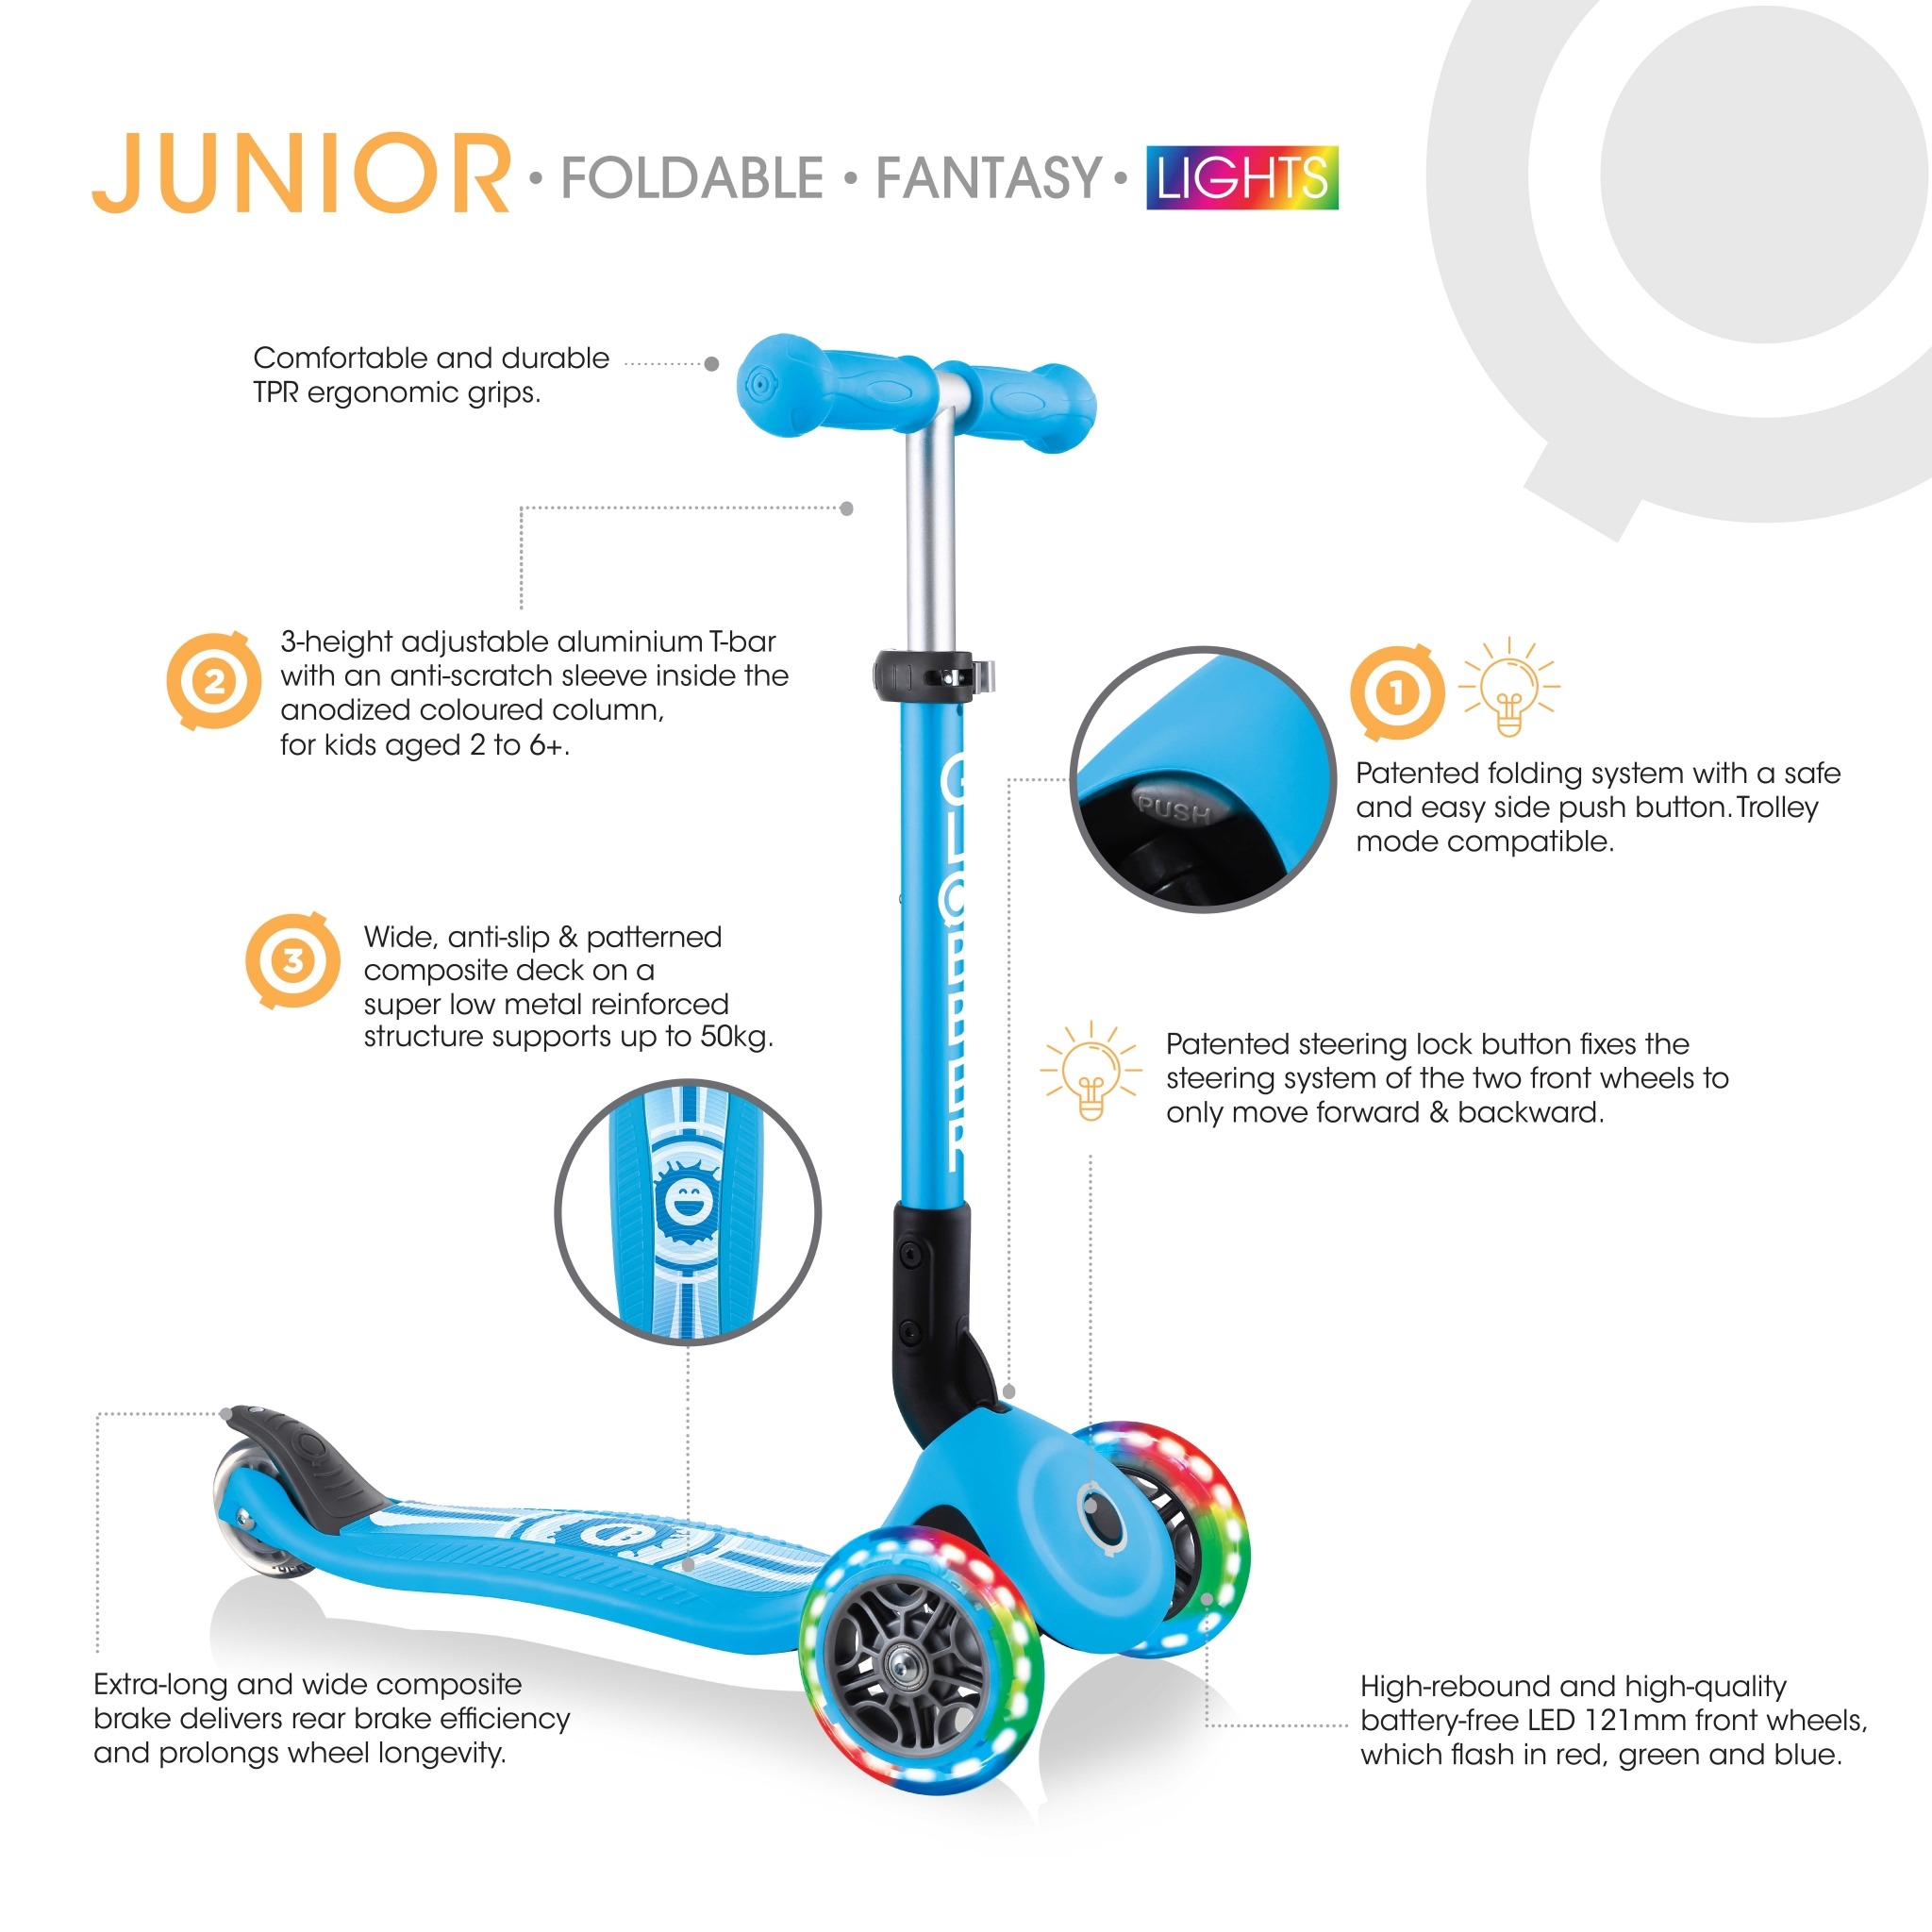 junior-foldable-fantasy-lights-3-wheel-scooter-for-2-year-old 1